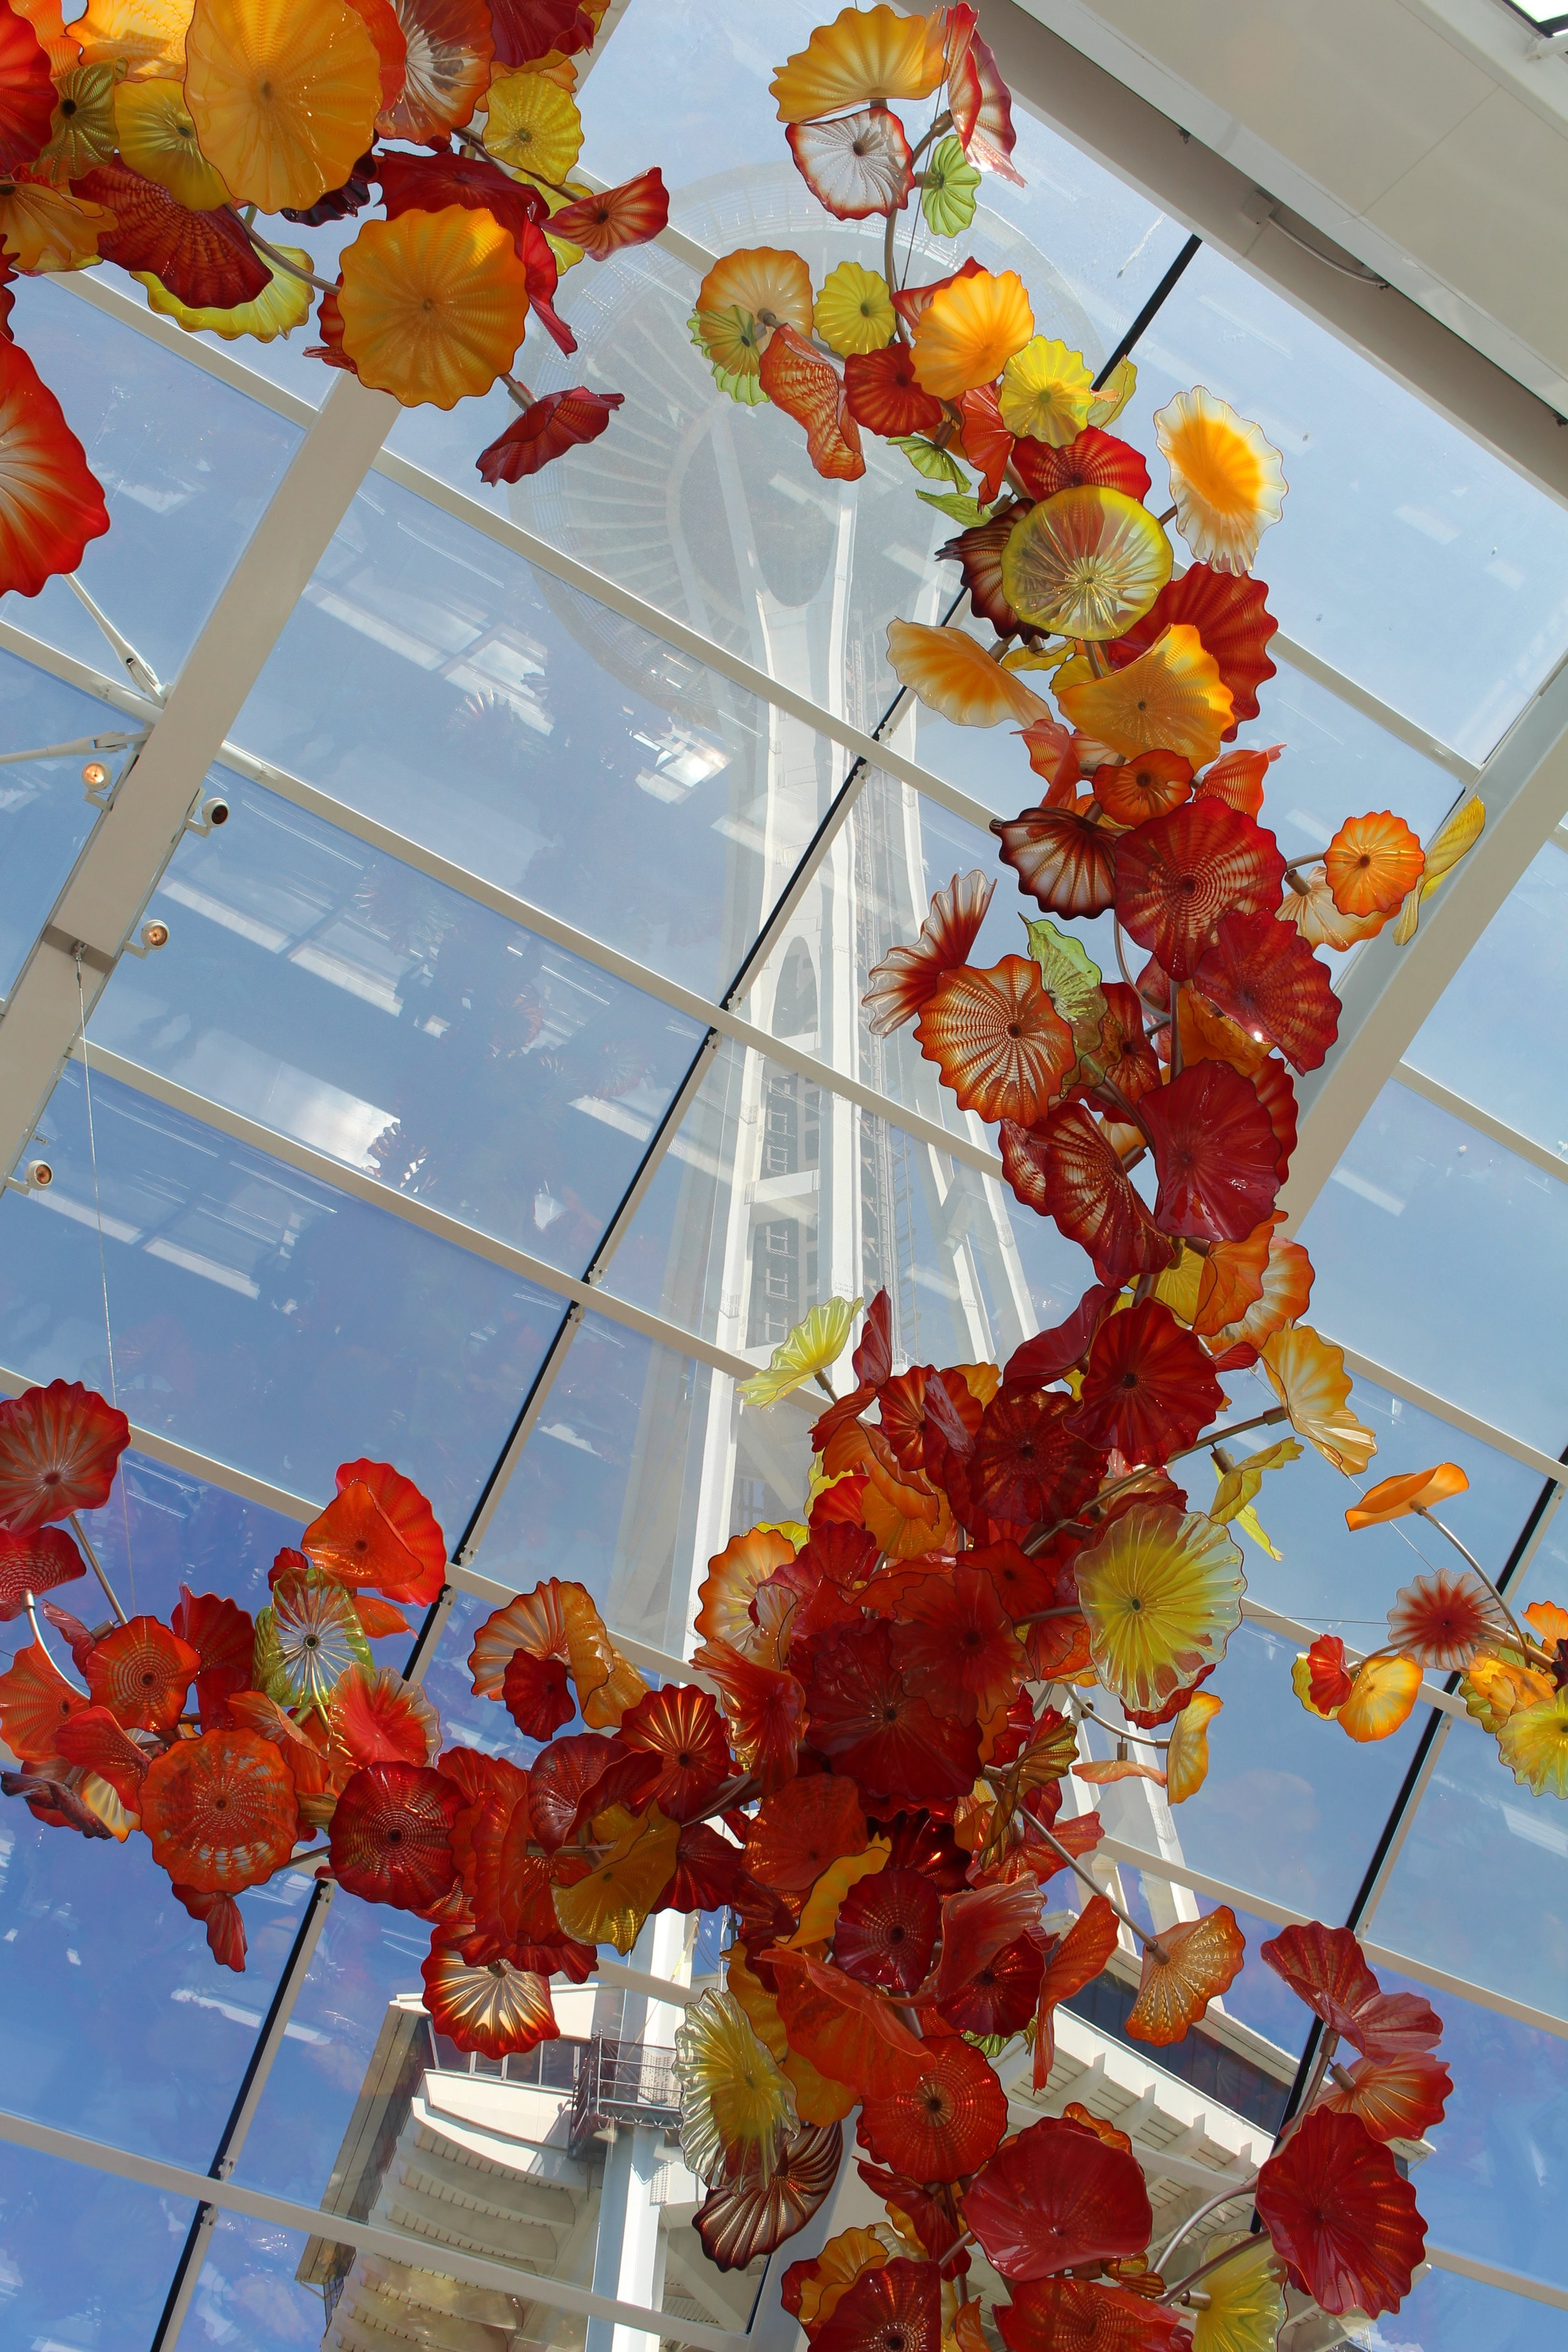 Space needle under the Chihuly